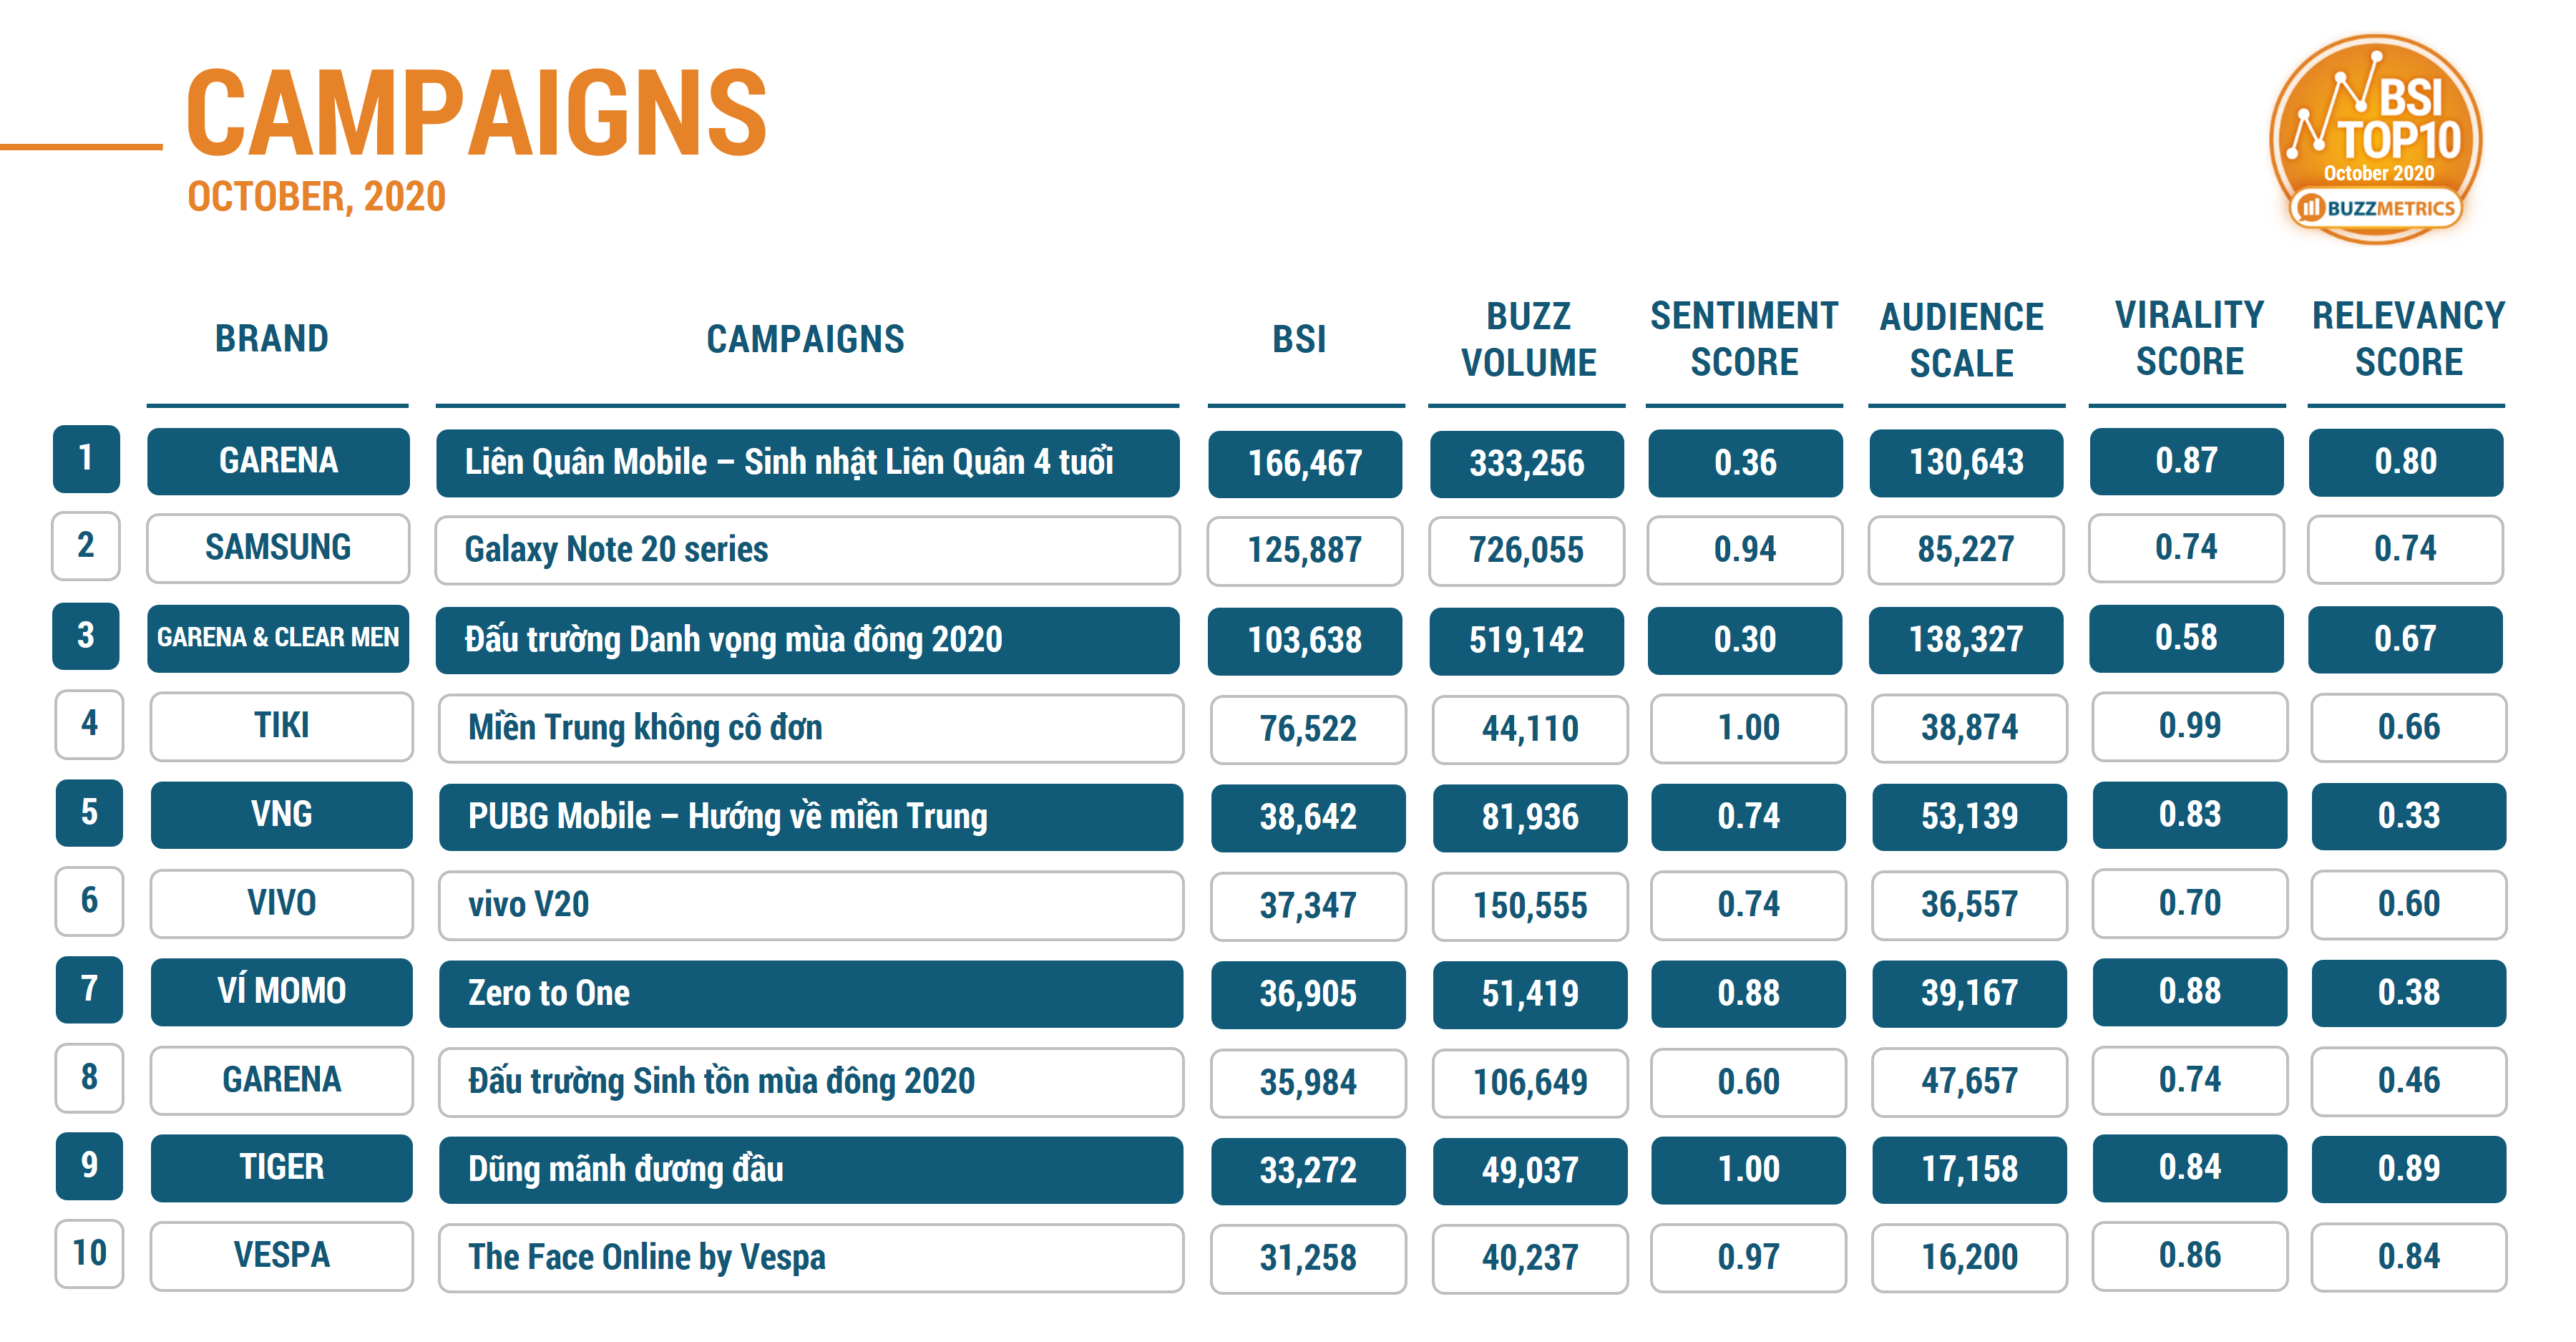 NEW BSI TOP10 OCT 2020 CAMPAIGNS TABLE